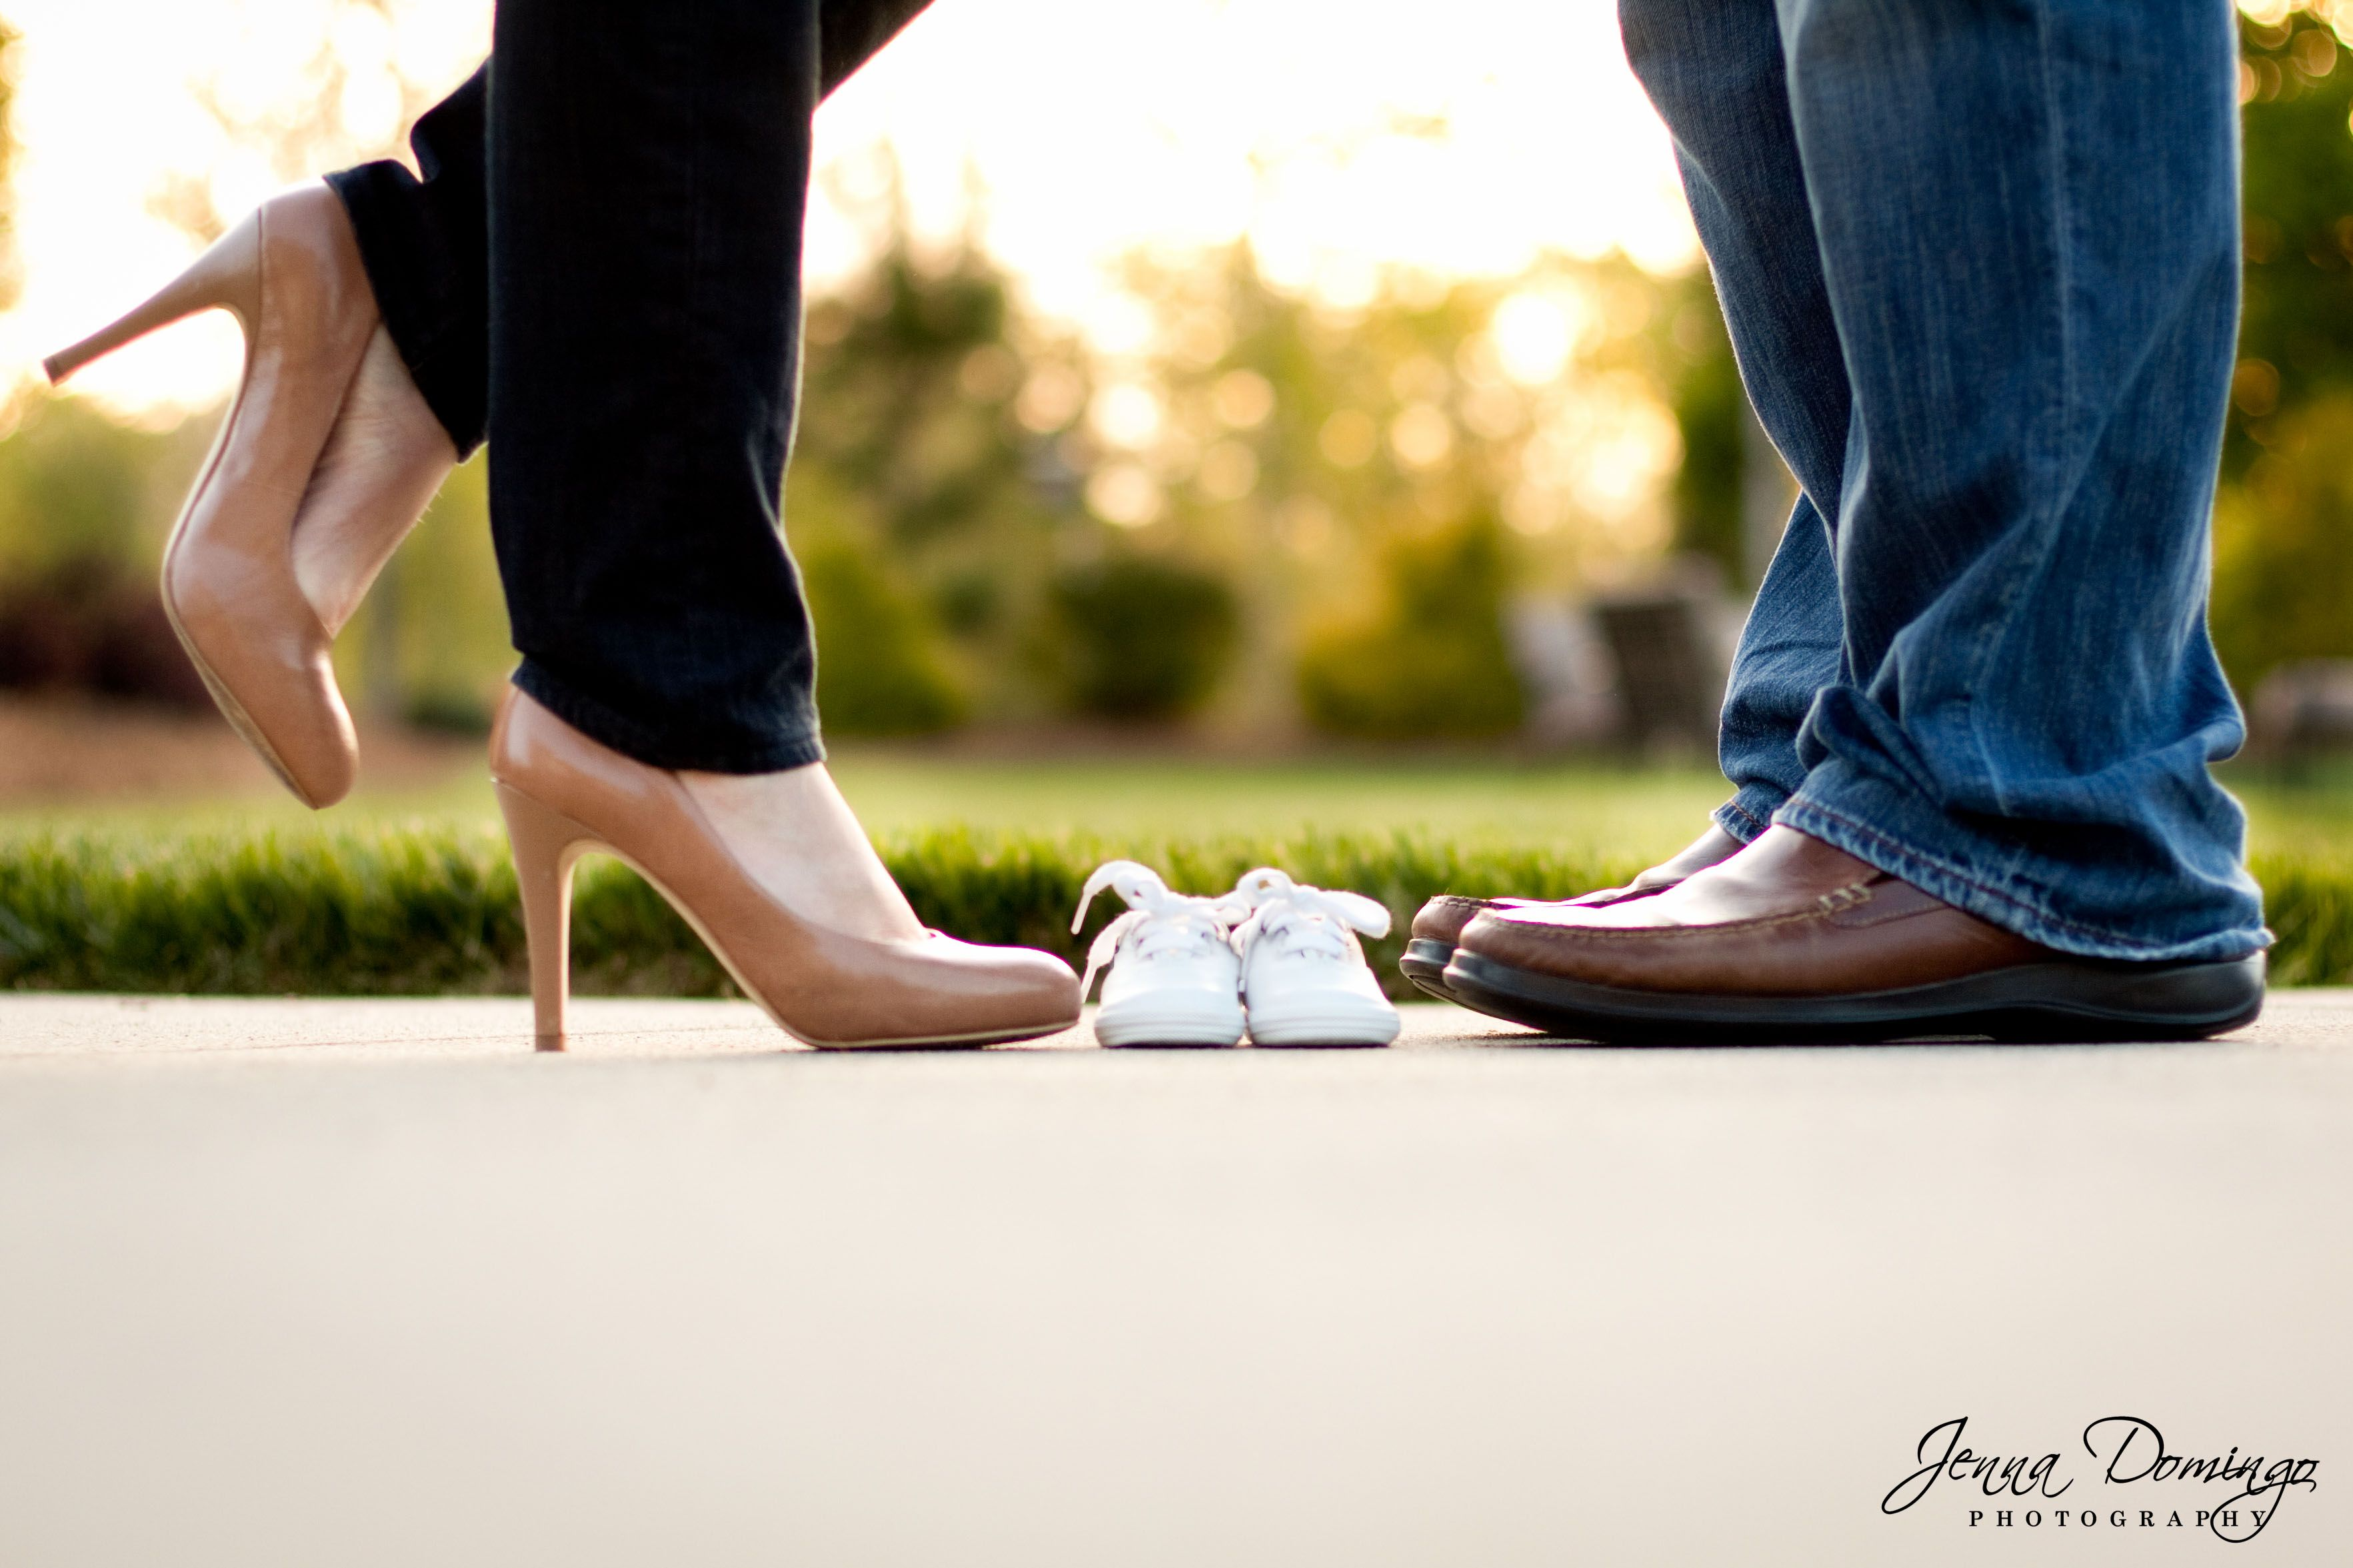 Baby Announcement - Our family is growing by 2 feet! Photo by Jenna Domingo Photography ((Winston-Salem, NC)